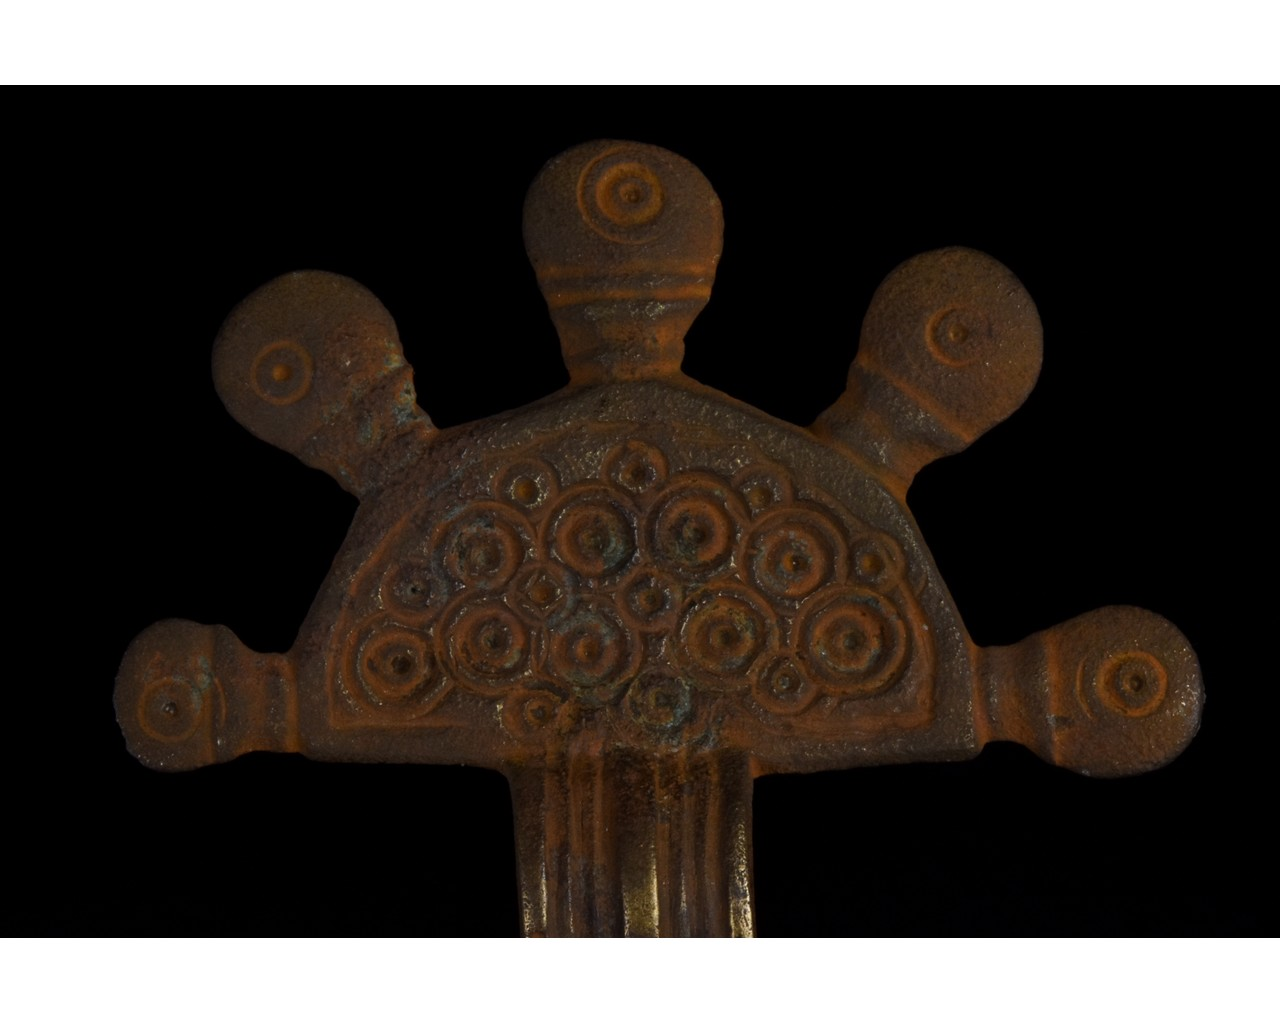 PAIR OF VISIGOTHIC RADIATE HEADED BOW BROOCHES - Image 5 of 8